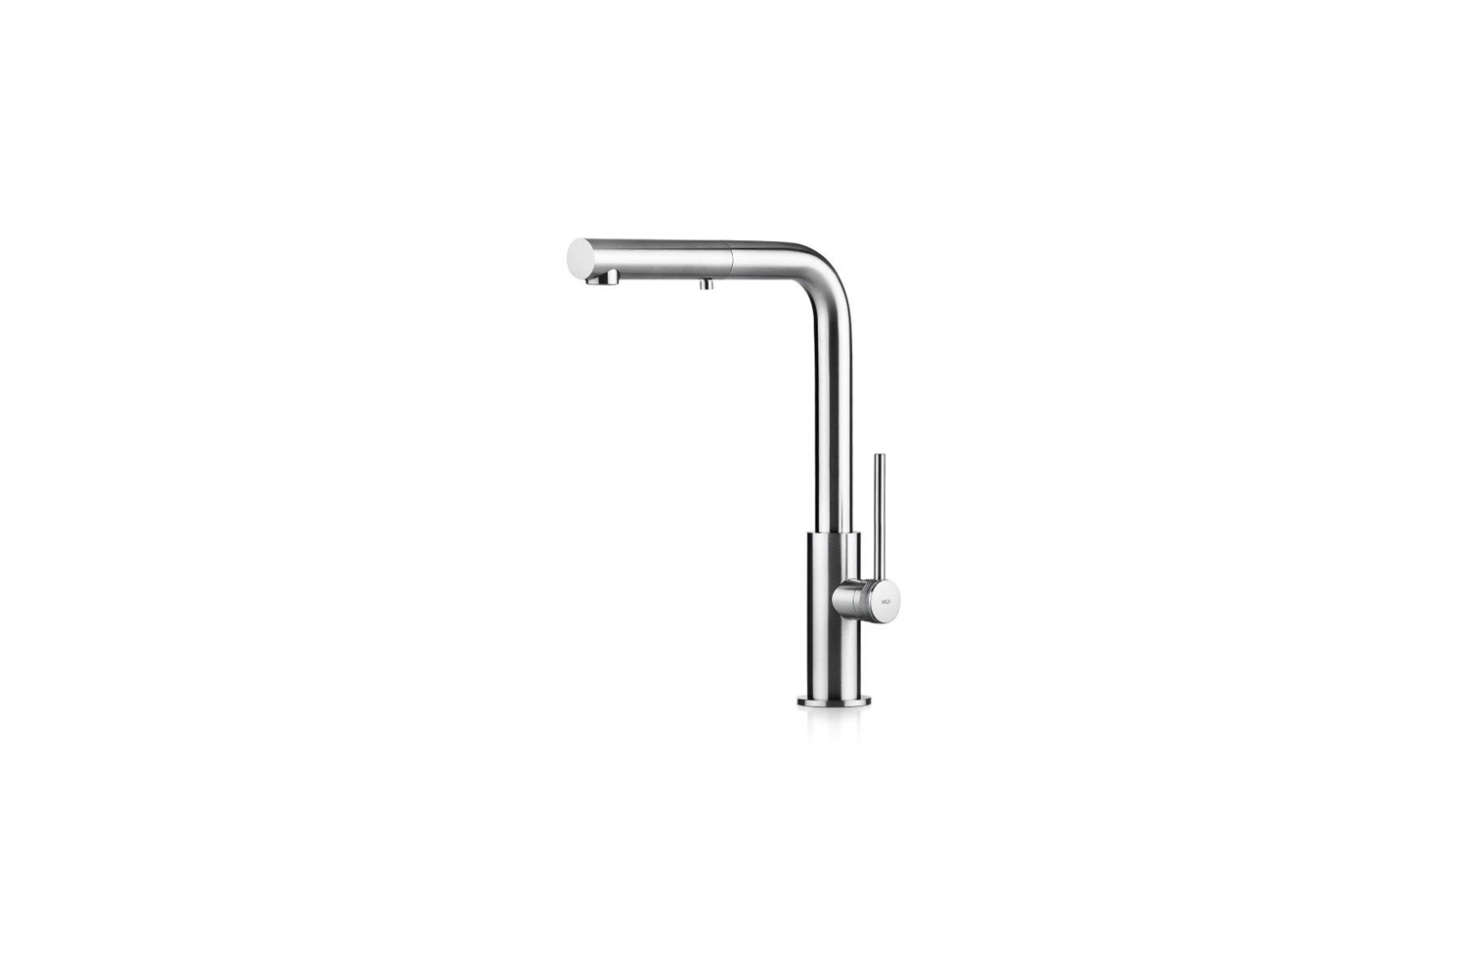 10 Best Modern Single Lever L-Shaped Straight Kitchen Faucets